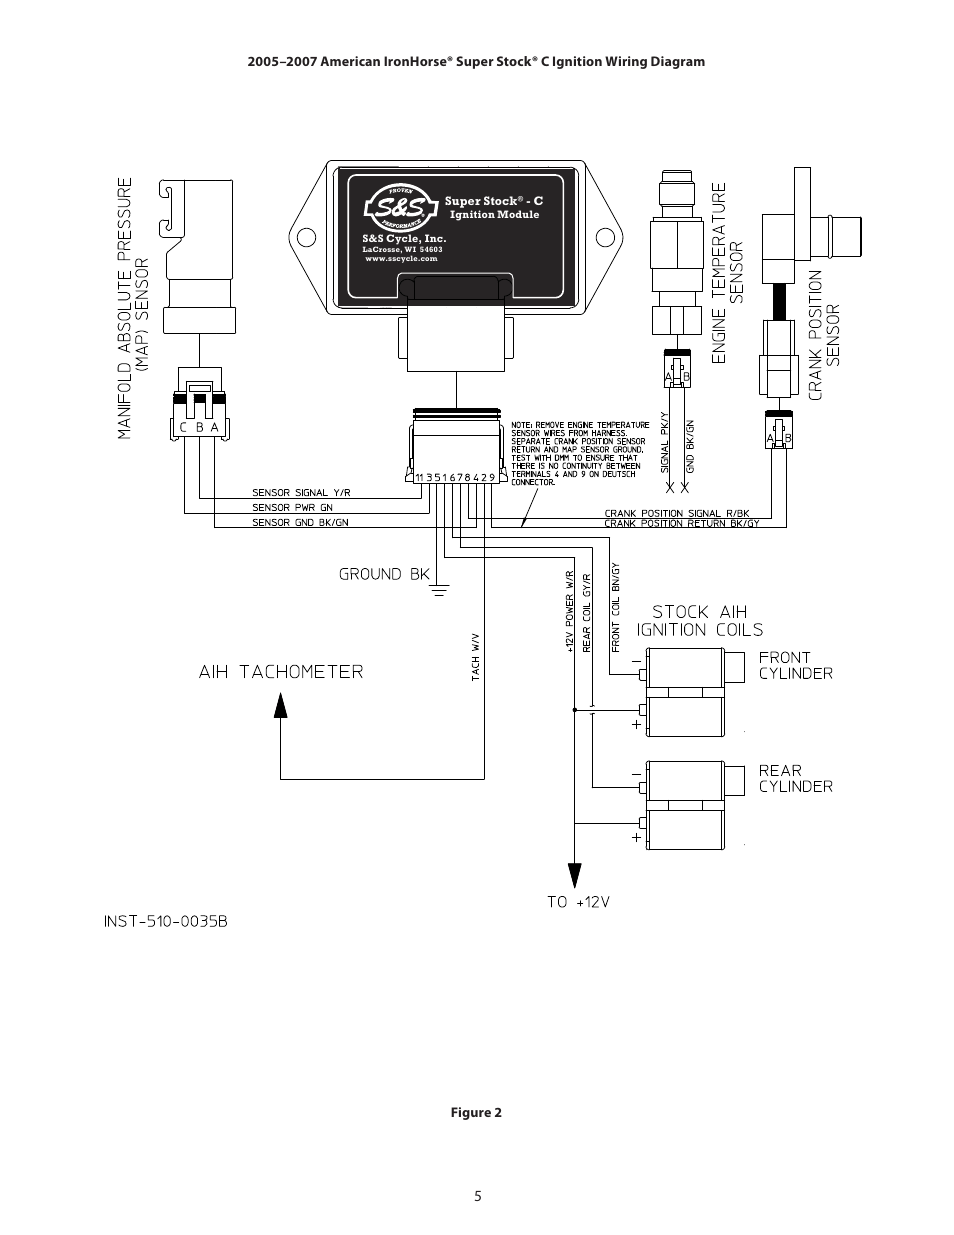 ss cycle super stock c ignition in carbureted 20042007 american ironhorse motorcycles page5?resize\\\\\\\\\\\\\\\\\\\\\\\\\\\\\\\=665%2C861 motorcycle tach wiring diagram motorcycle voltage regulator harley davidson voltage regulator wiring diagram at alyssarenee.co